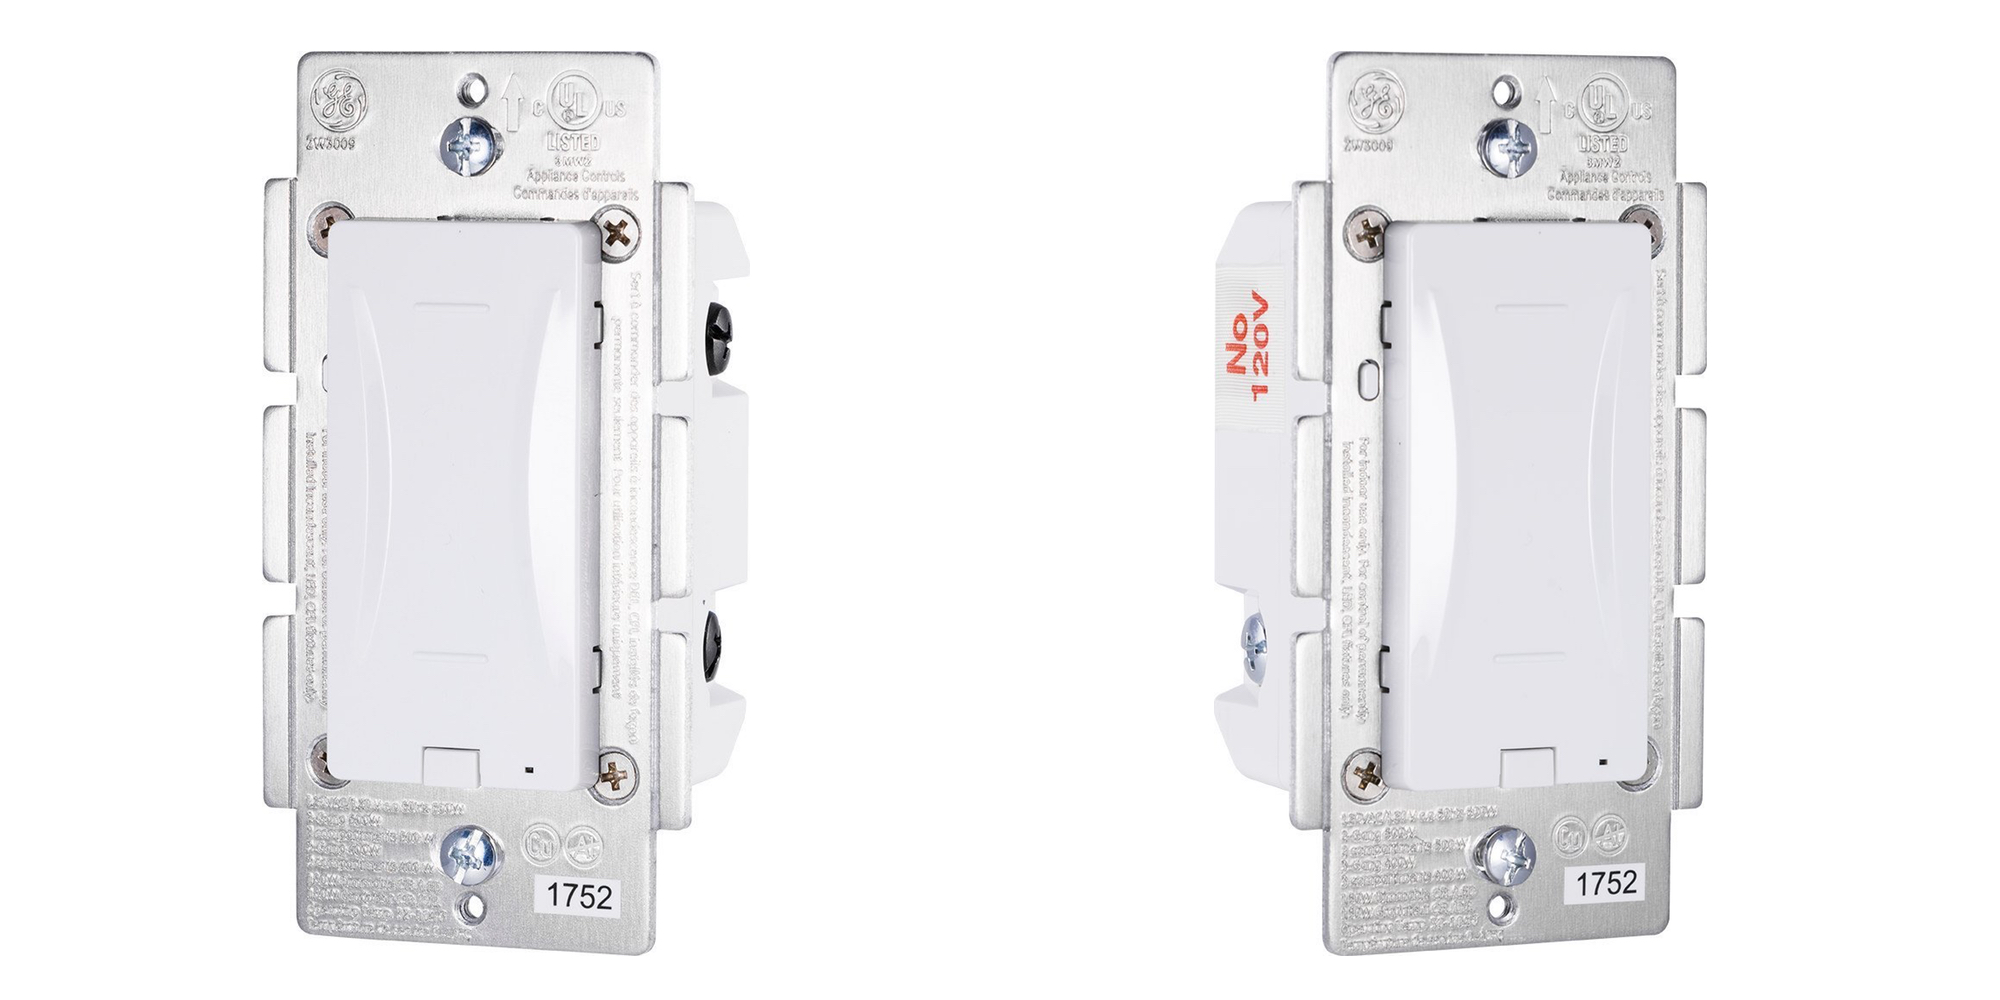 GE debuts its latest Z-Wave Plus Dimmer Switch with capacitive touch